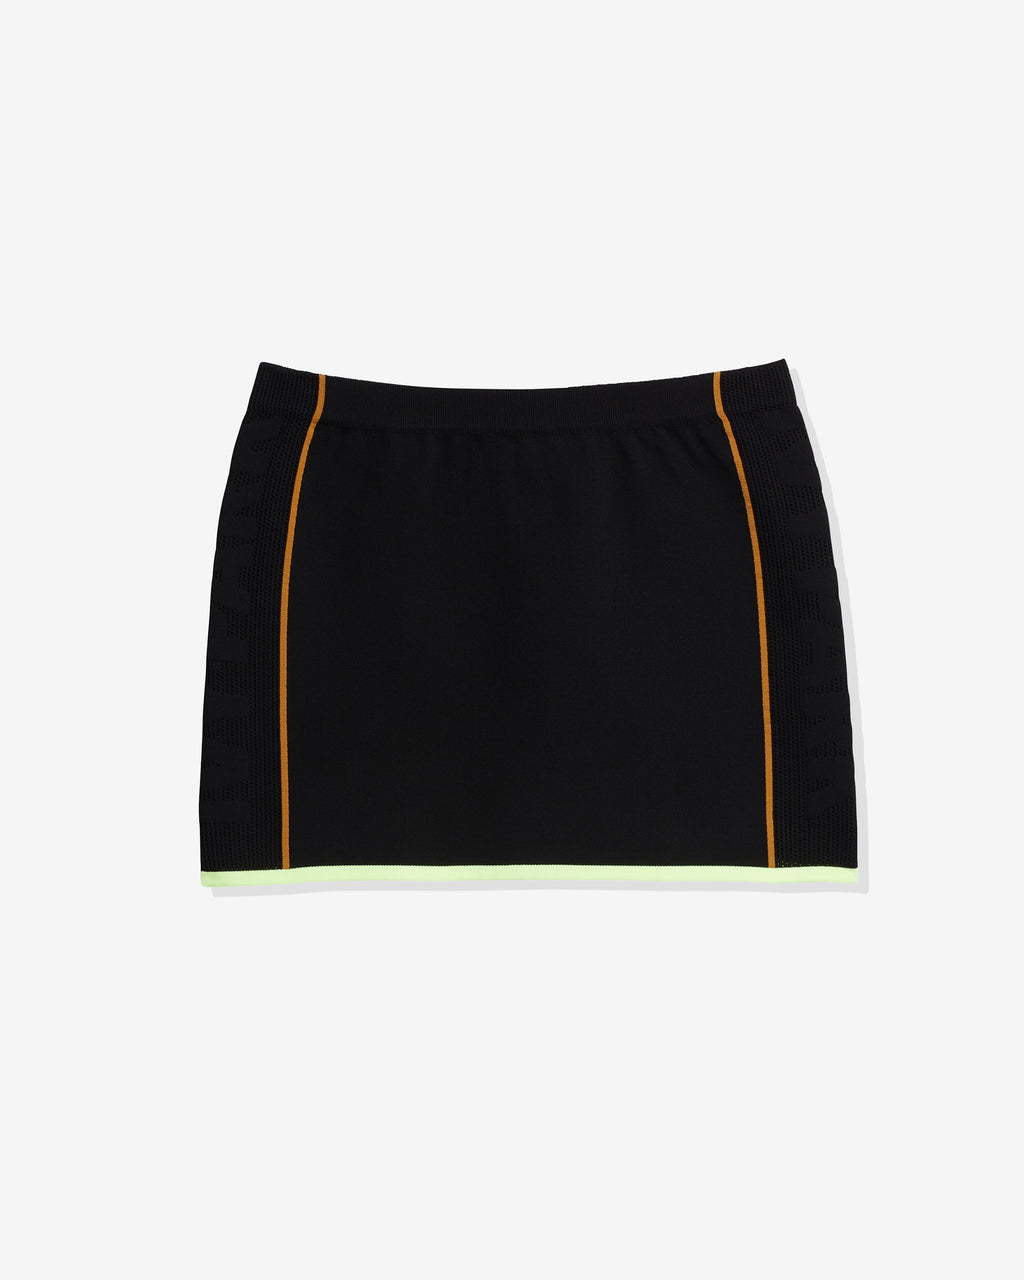 ADIDAS X IVP KN SKIRT (PLUS) - BLACK/ MESA